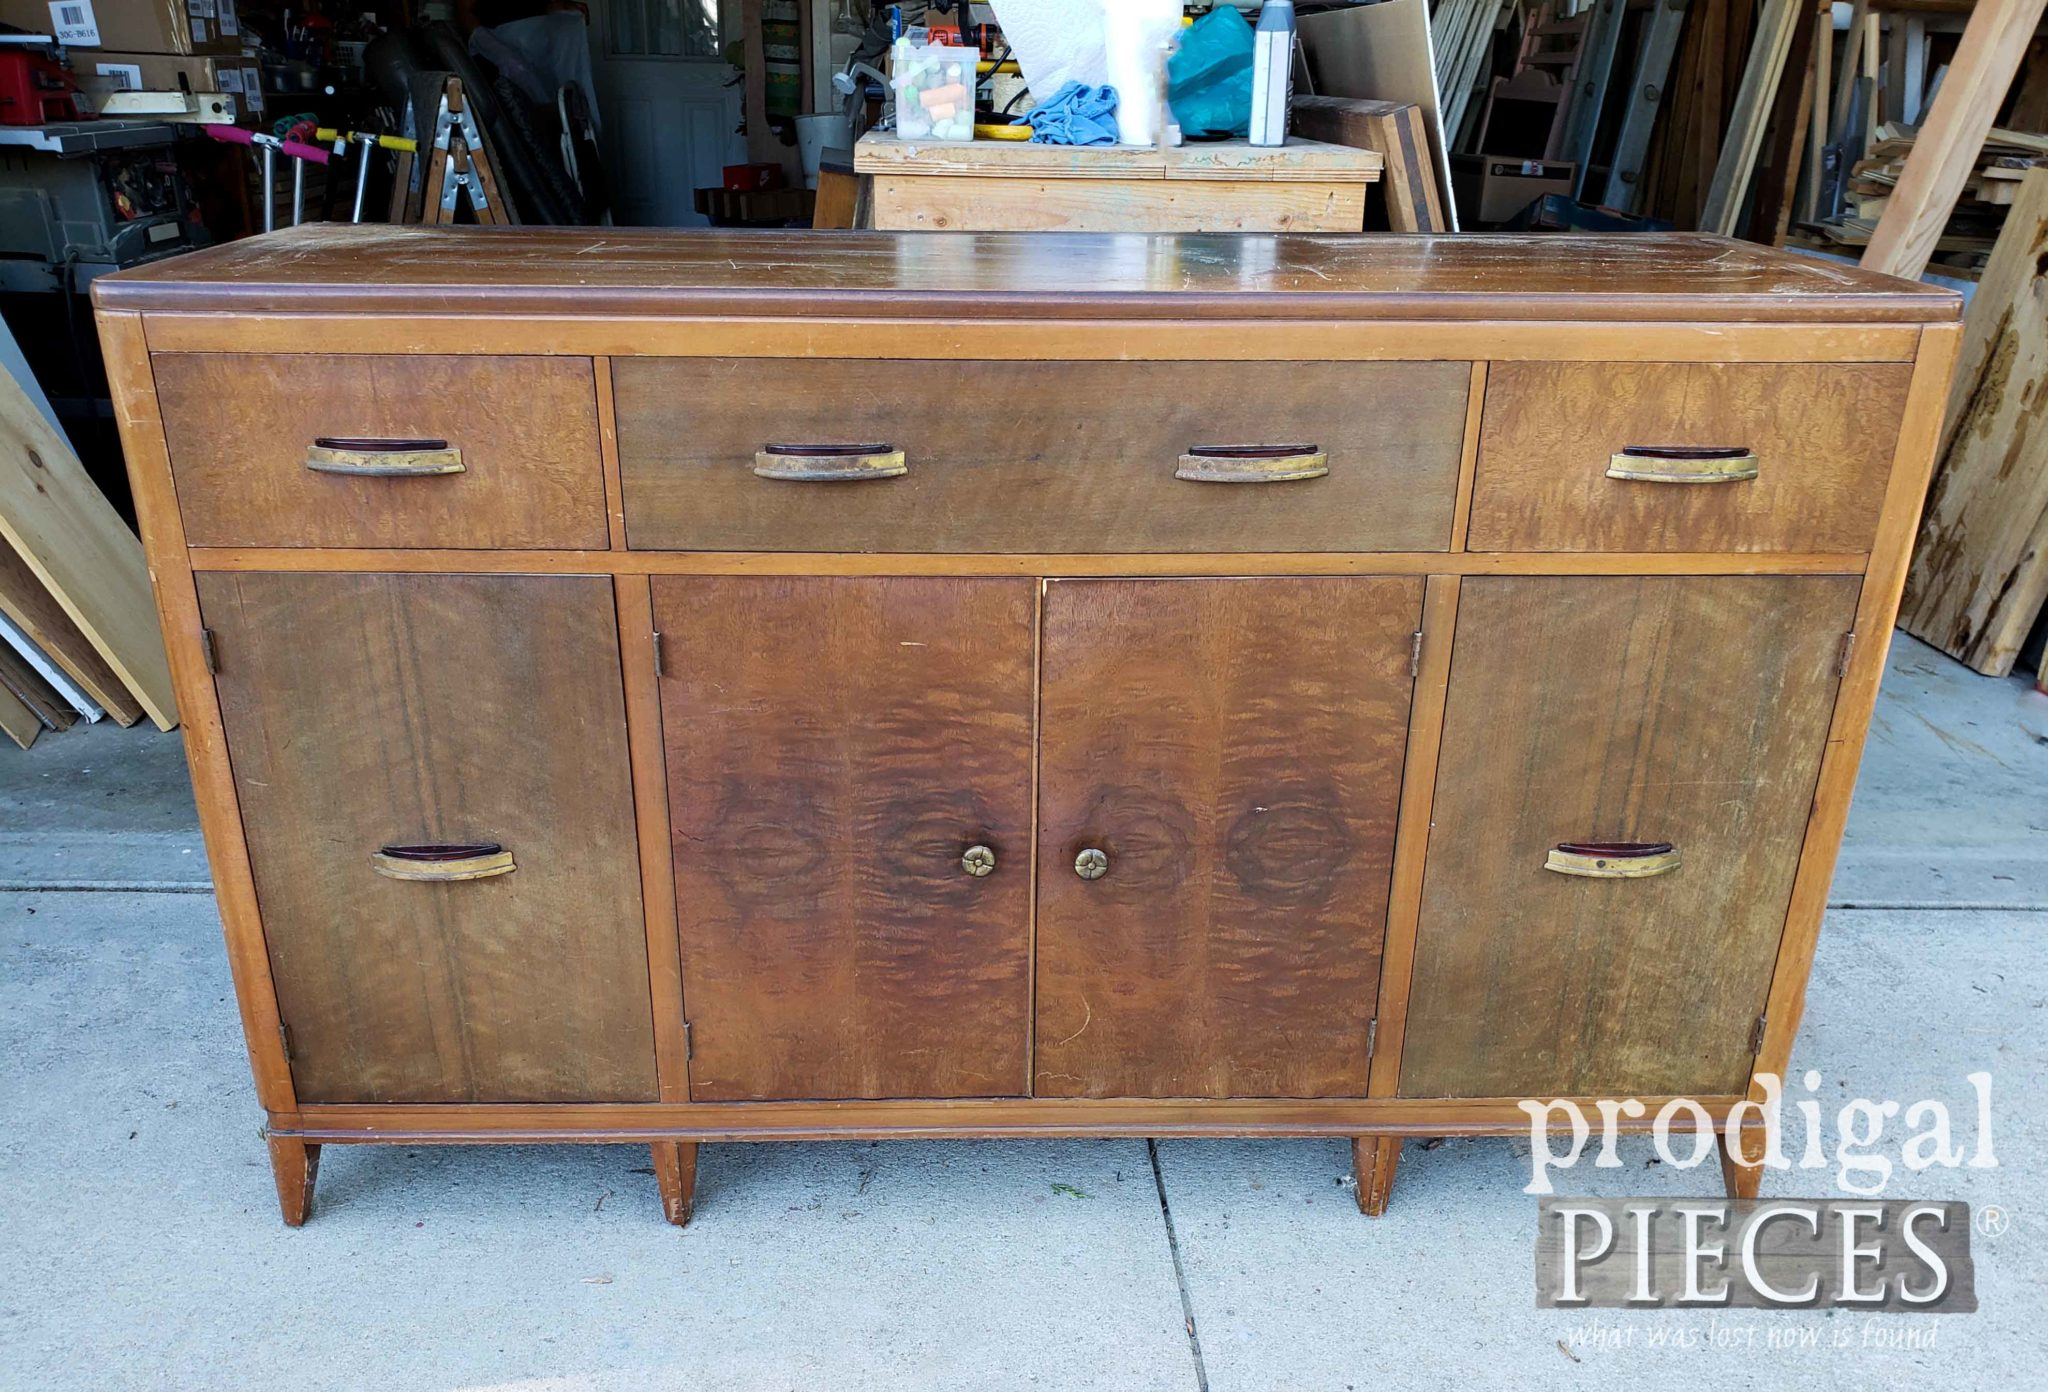 Vintage Art Deco Buffet Before Makeover by Prodigal Pieces | prodigalpieces.com